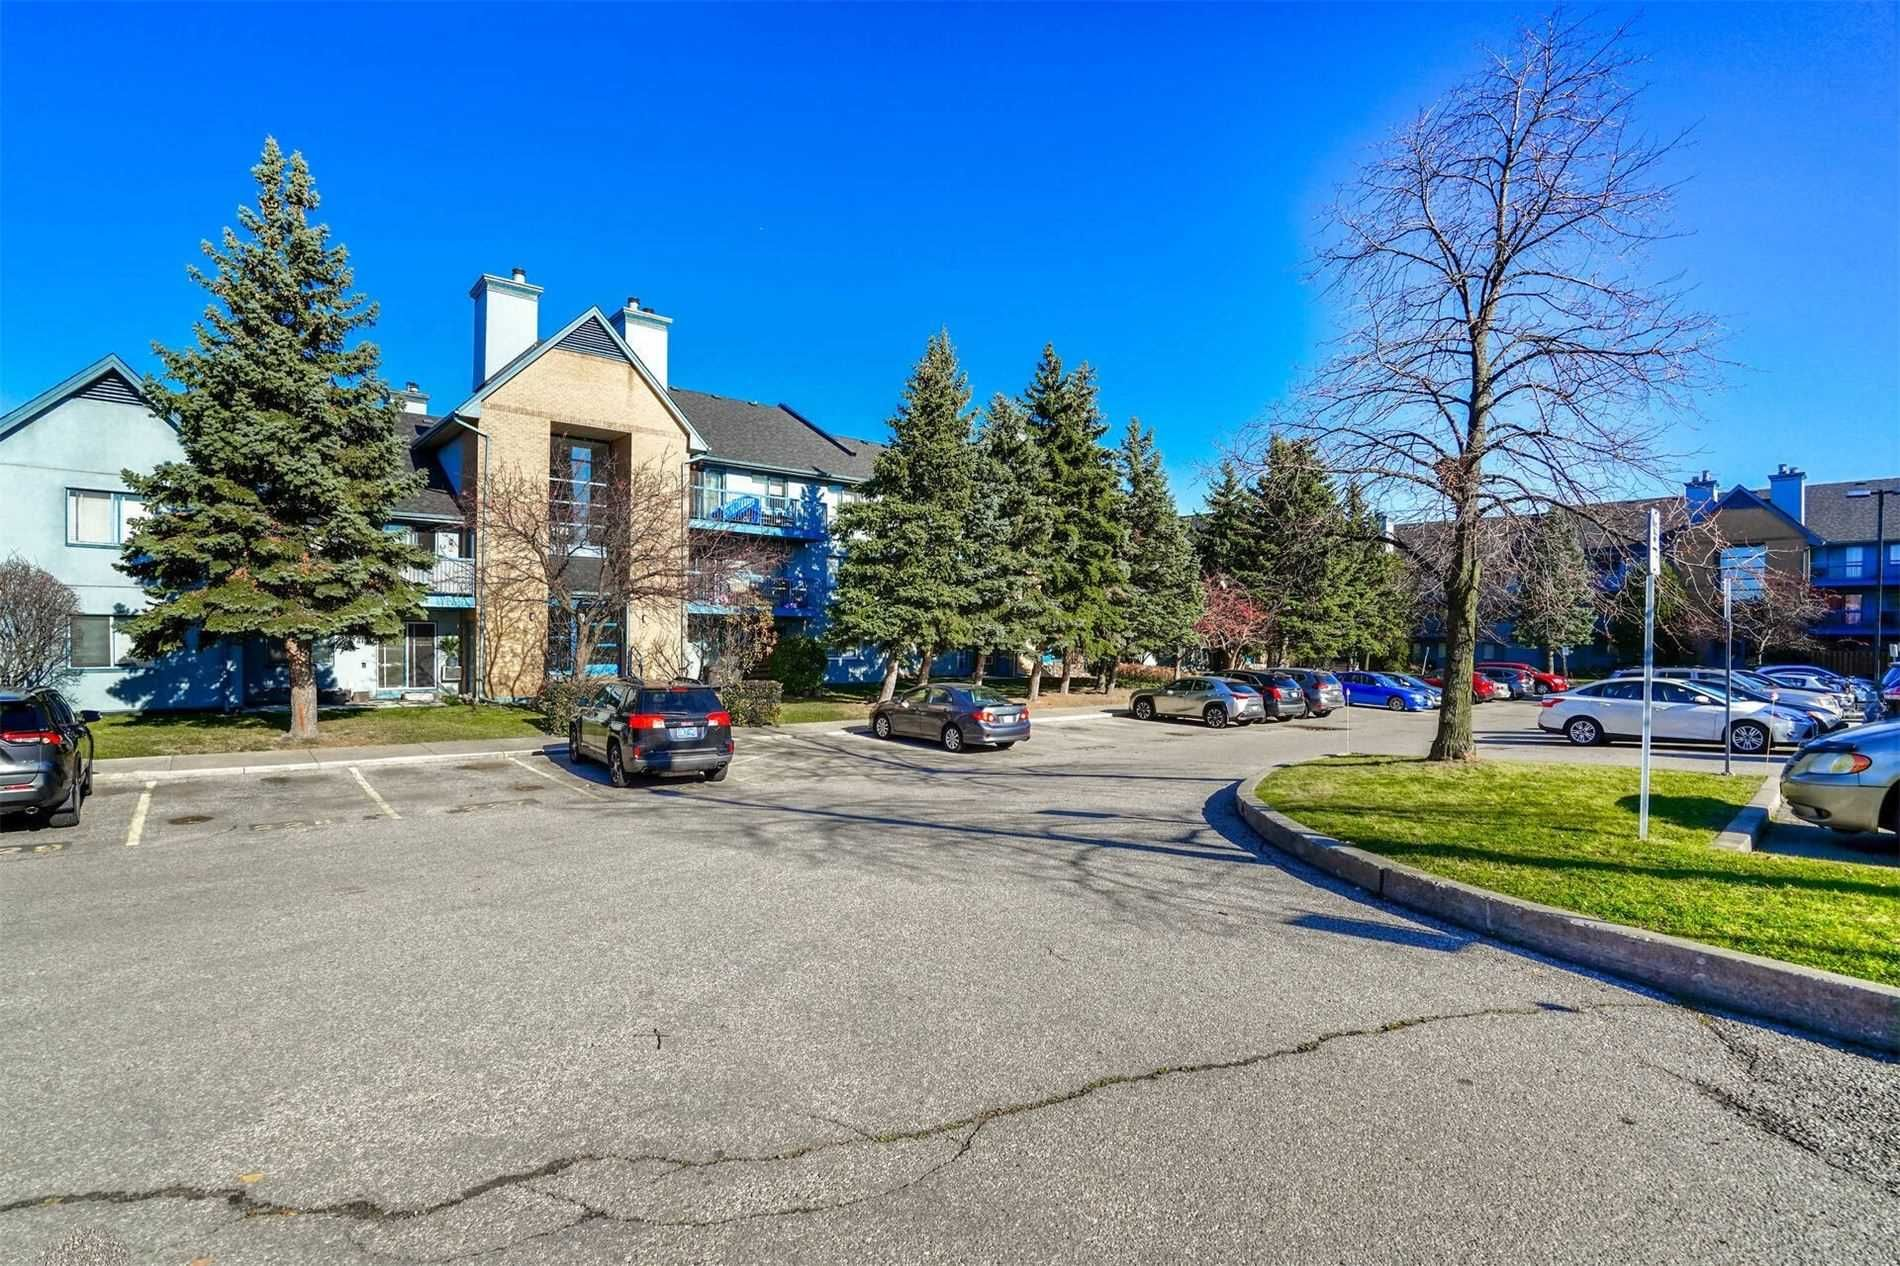 Main Photo: 1021 95 Trailwood Drive in Mississauga: Hurontario Condo for lease : MLS®# W4984485